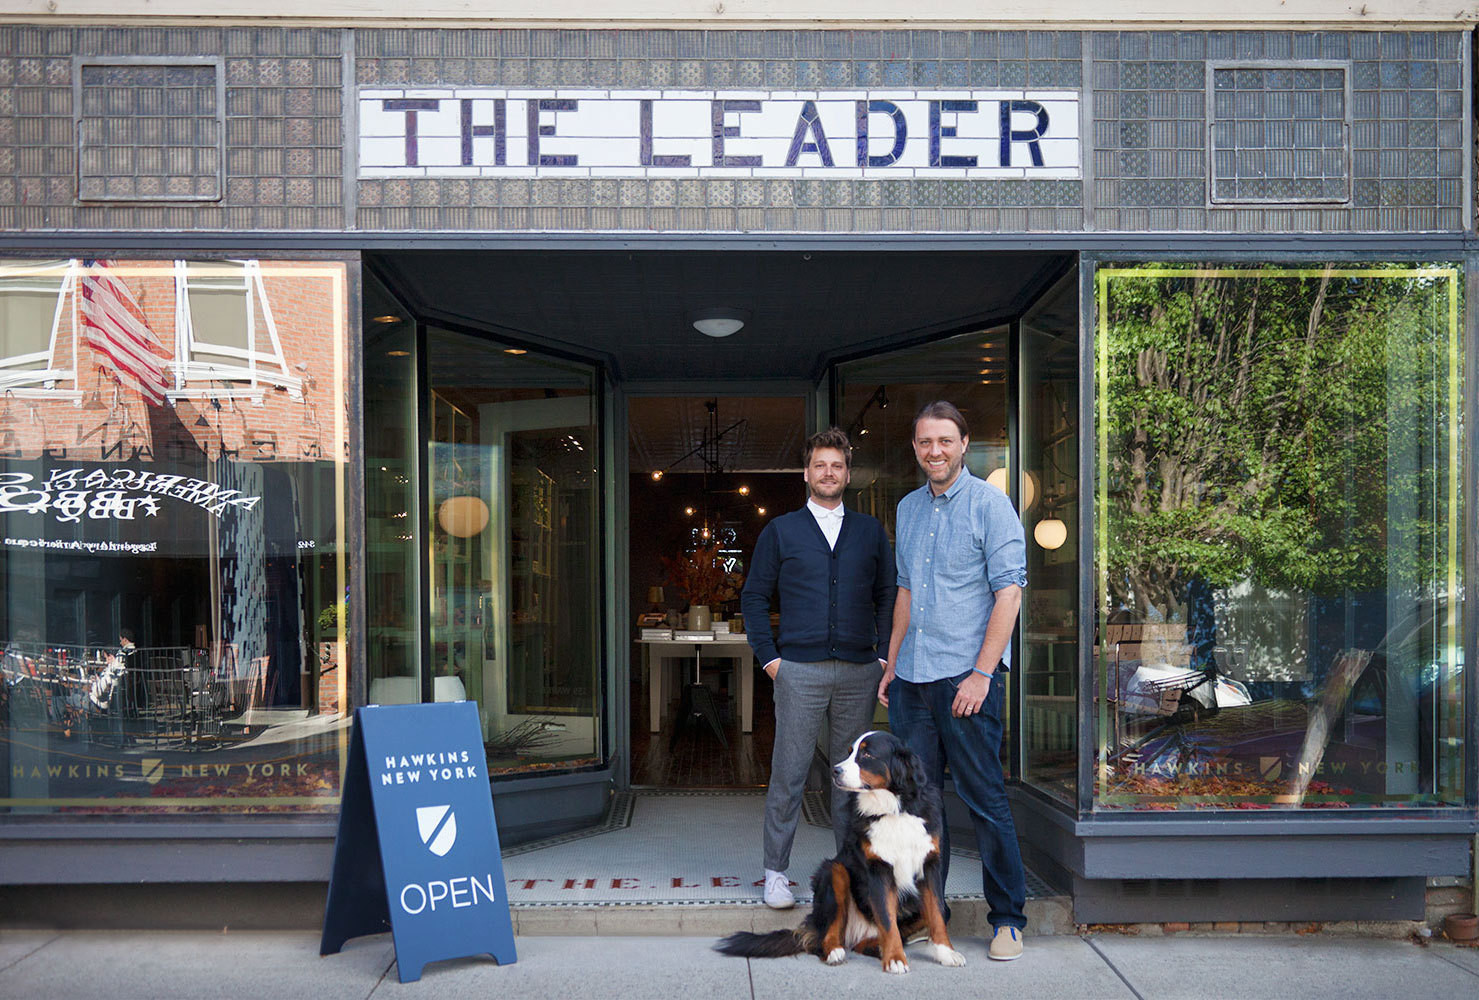 Nicholas Blaine (left) and Paul Denoly of Hawkins New York—with mascot Charlie—in front of their Hudson Valley design shop.